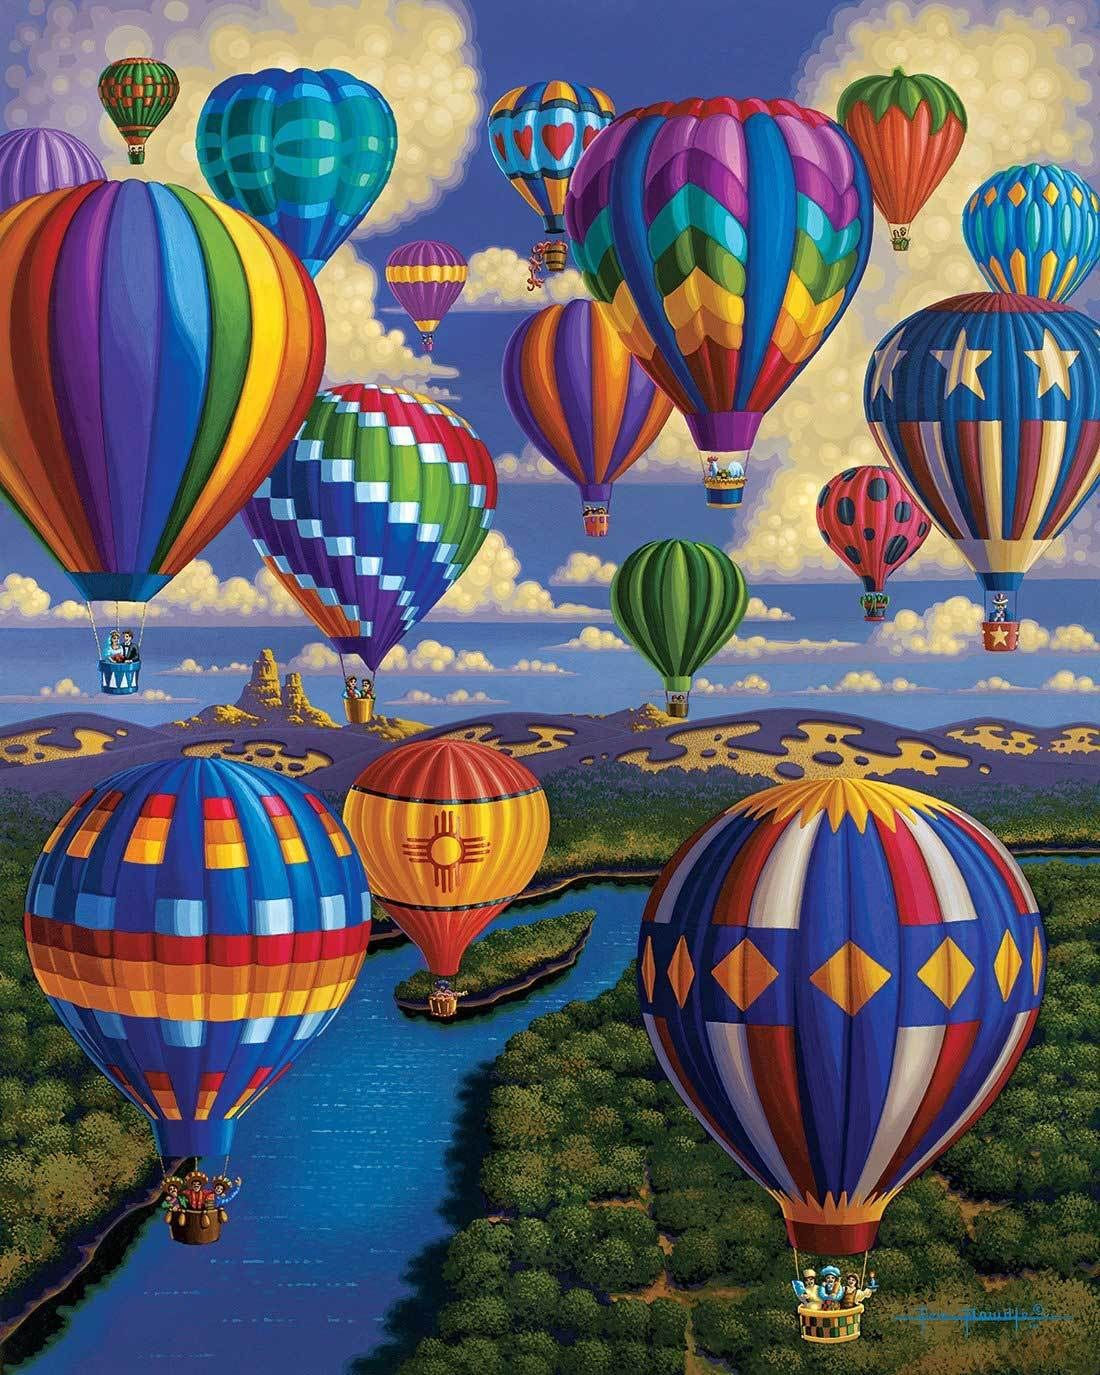 Balloon Festival Fine Art Hot air balloon, Balloons